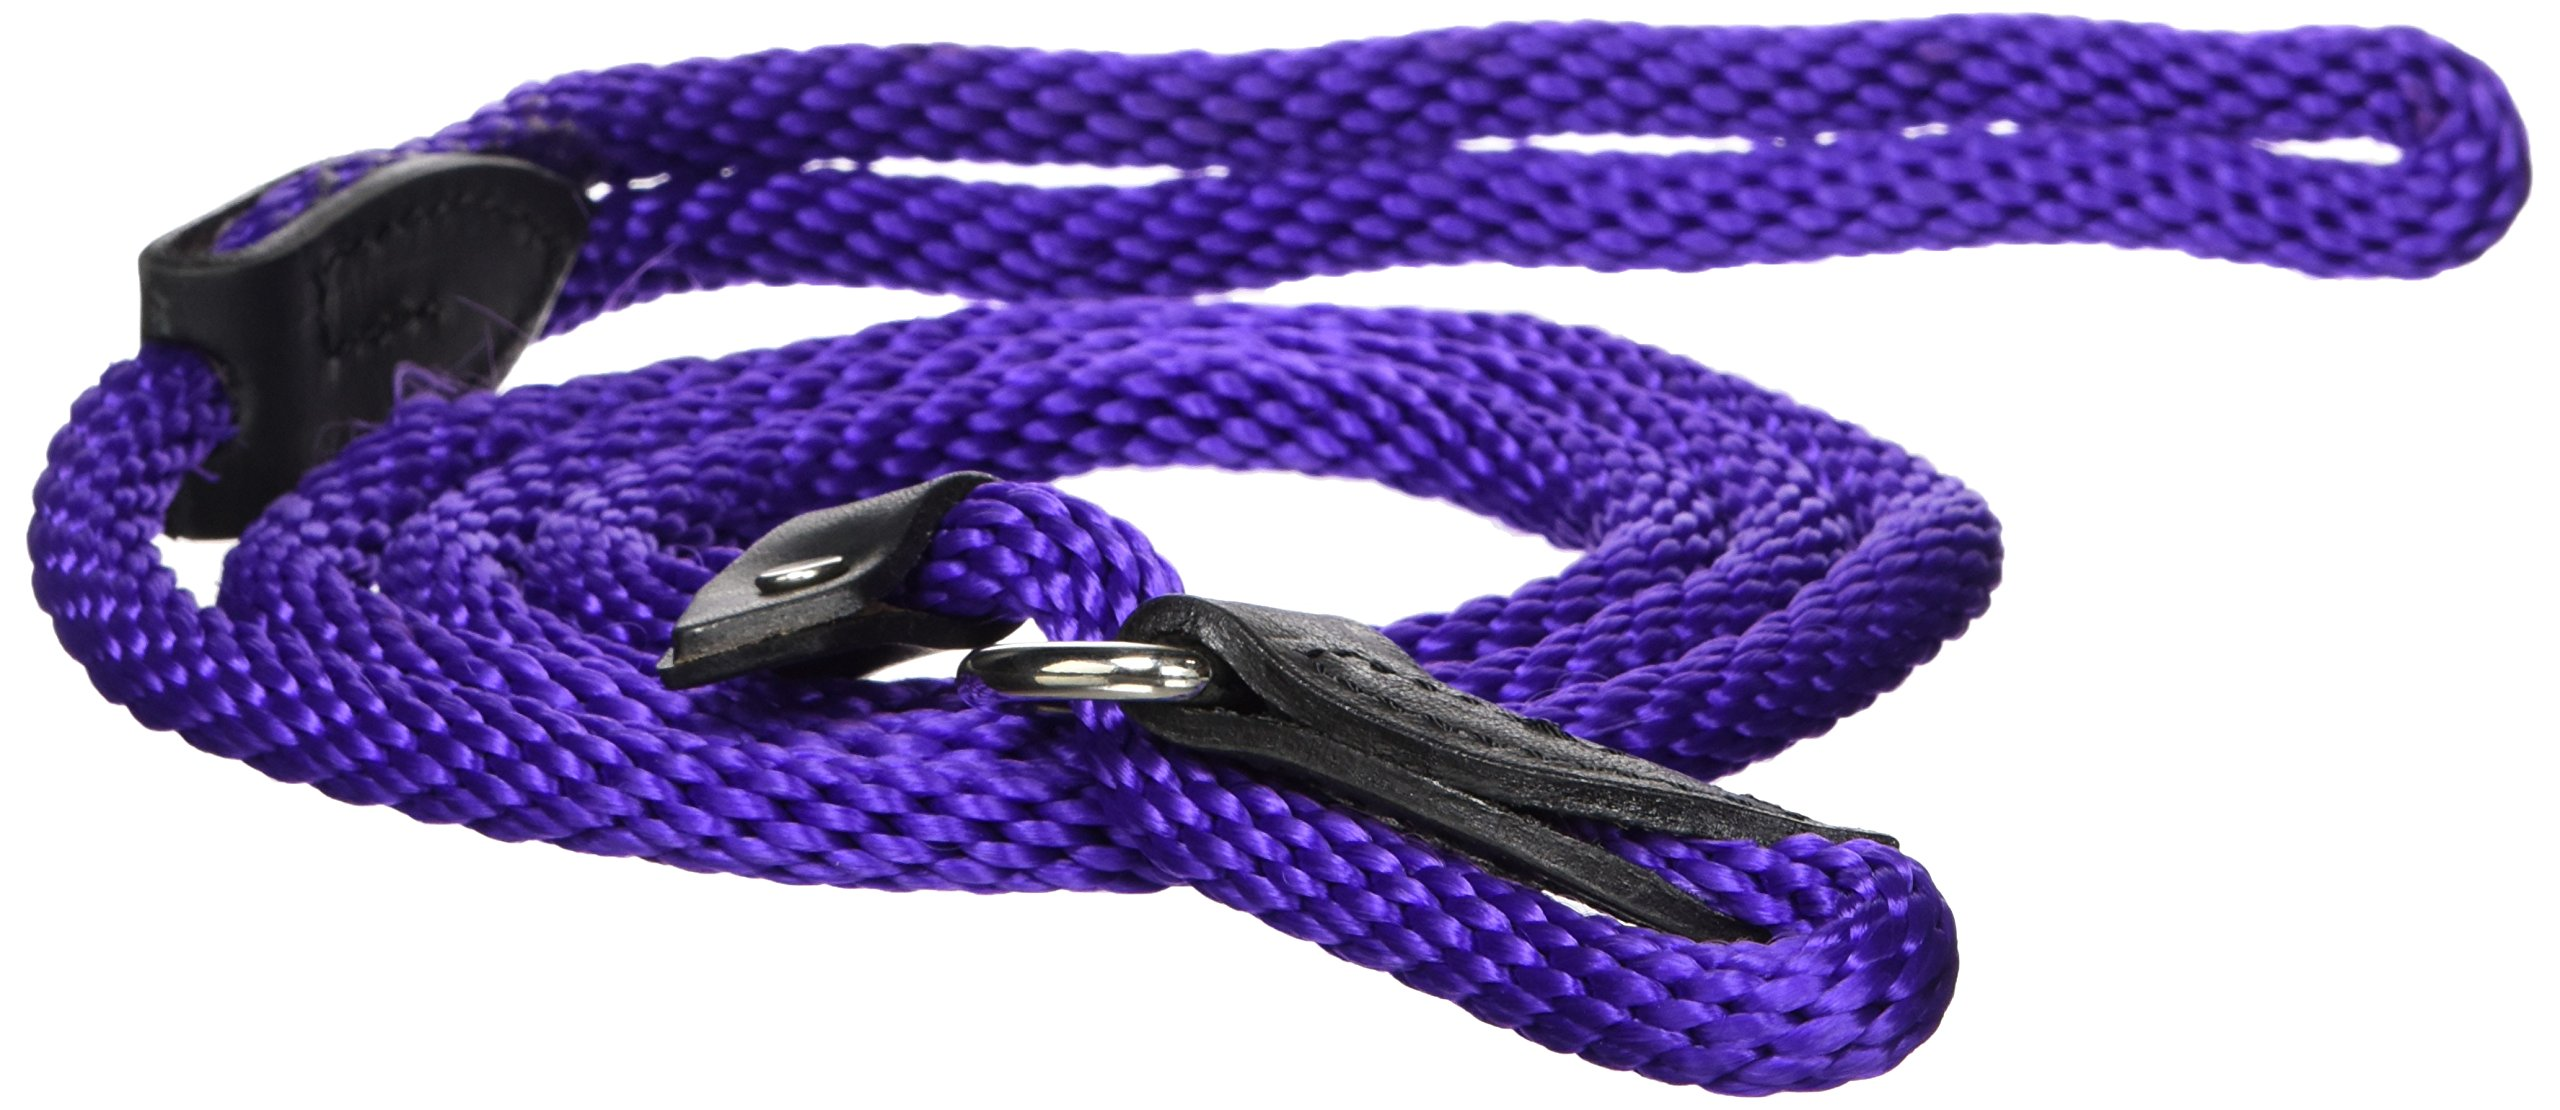 Hamilton 3/8'' x 6' London Quick Lead and Choke Collar for Dogs, Purple